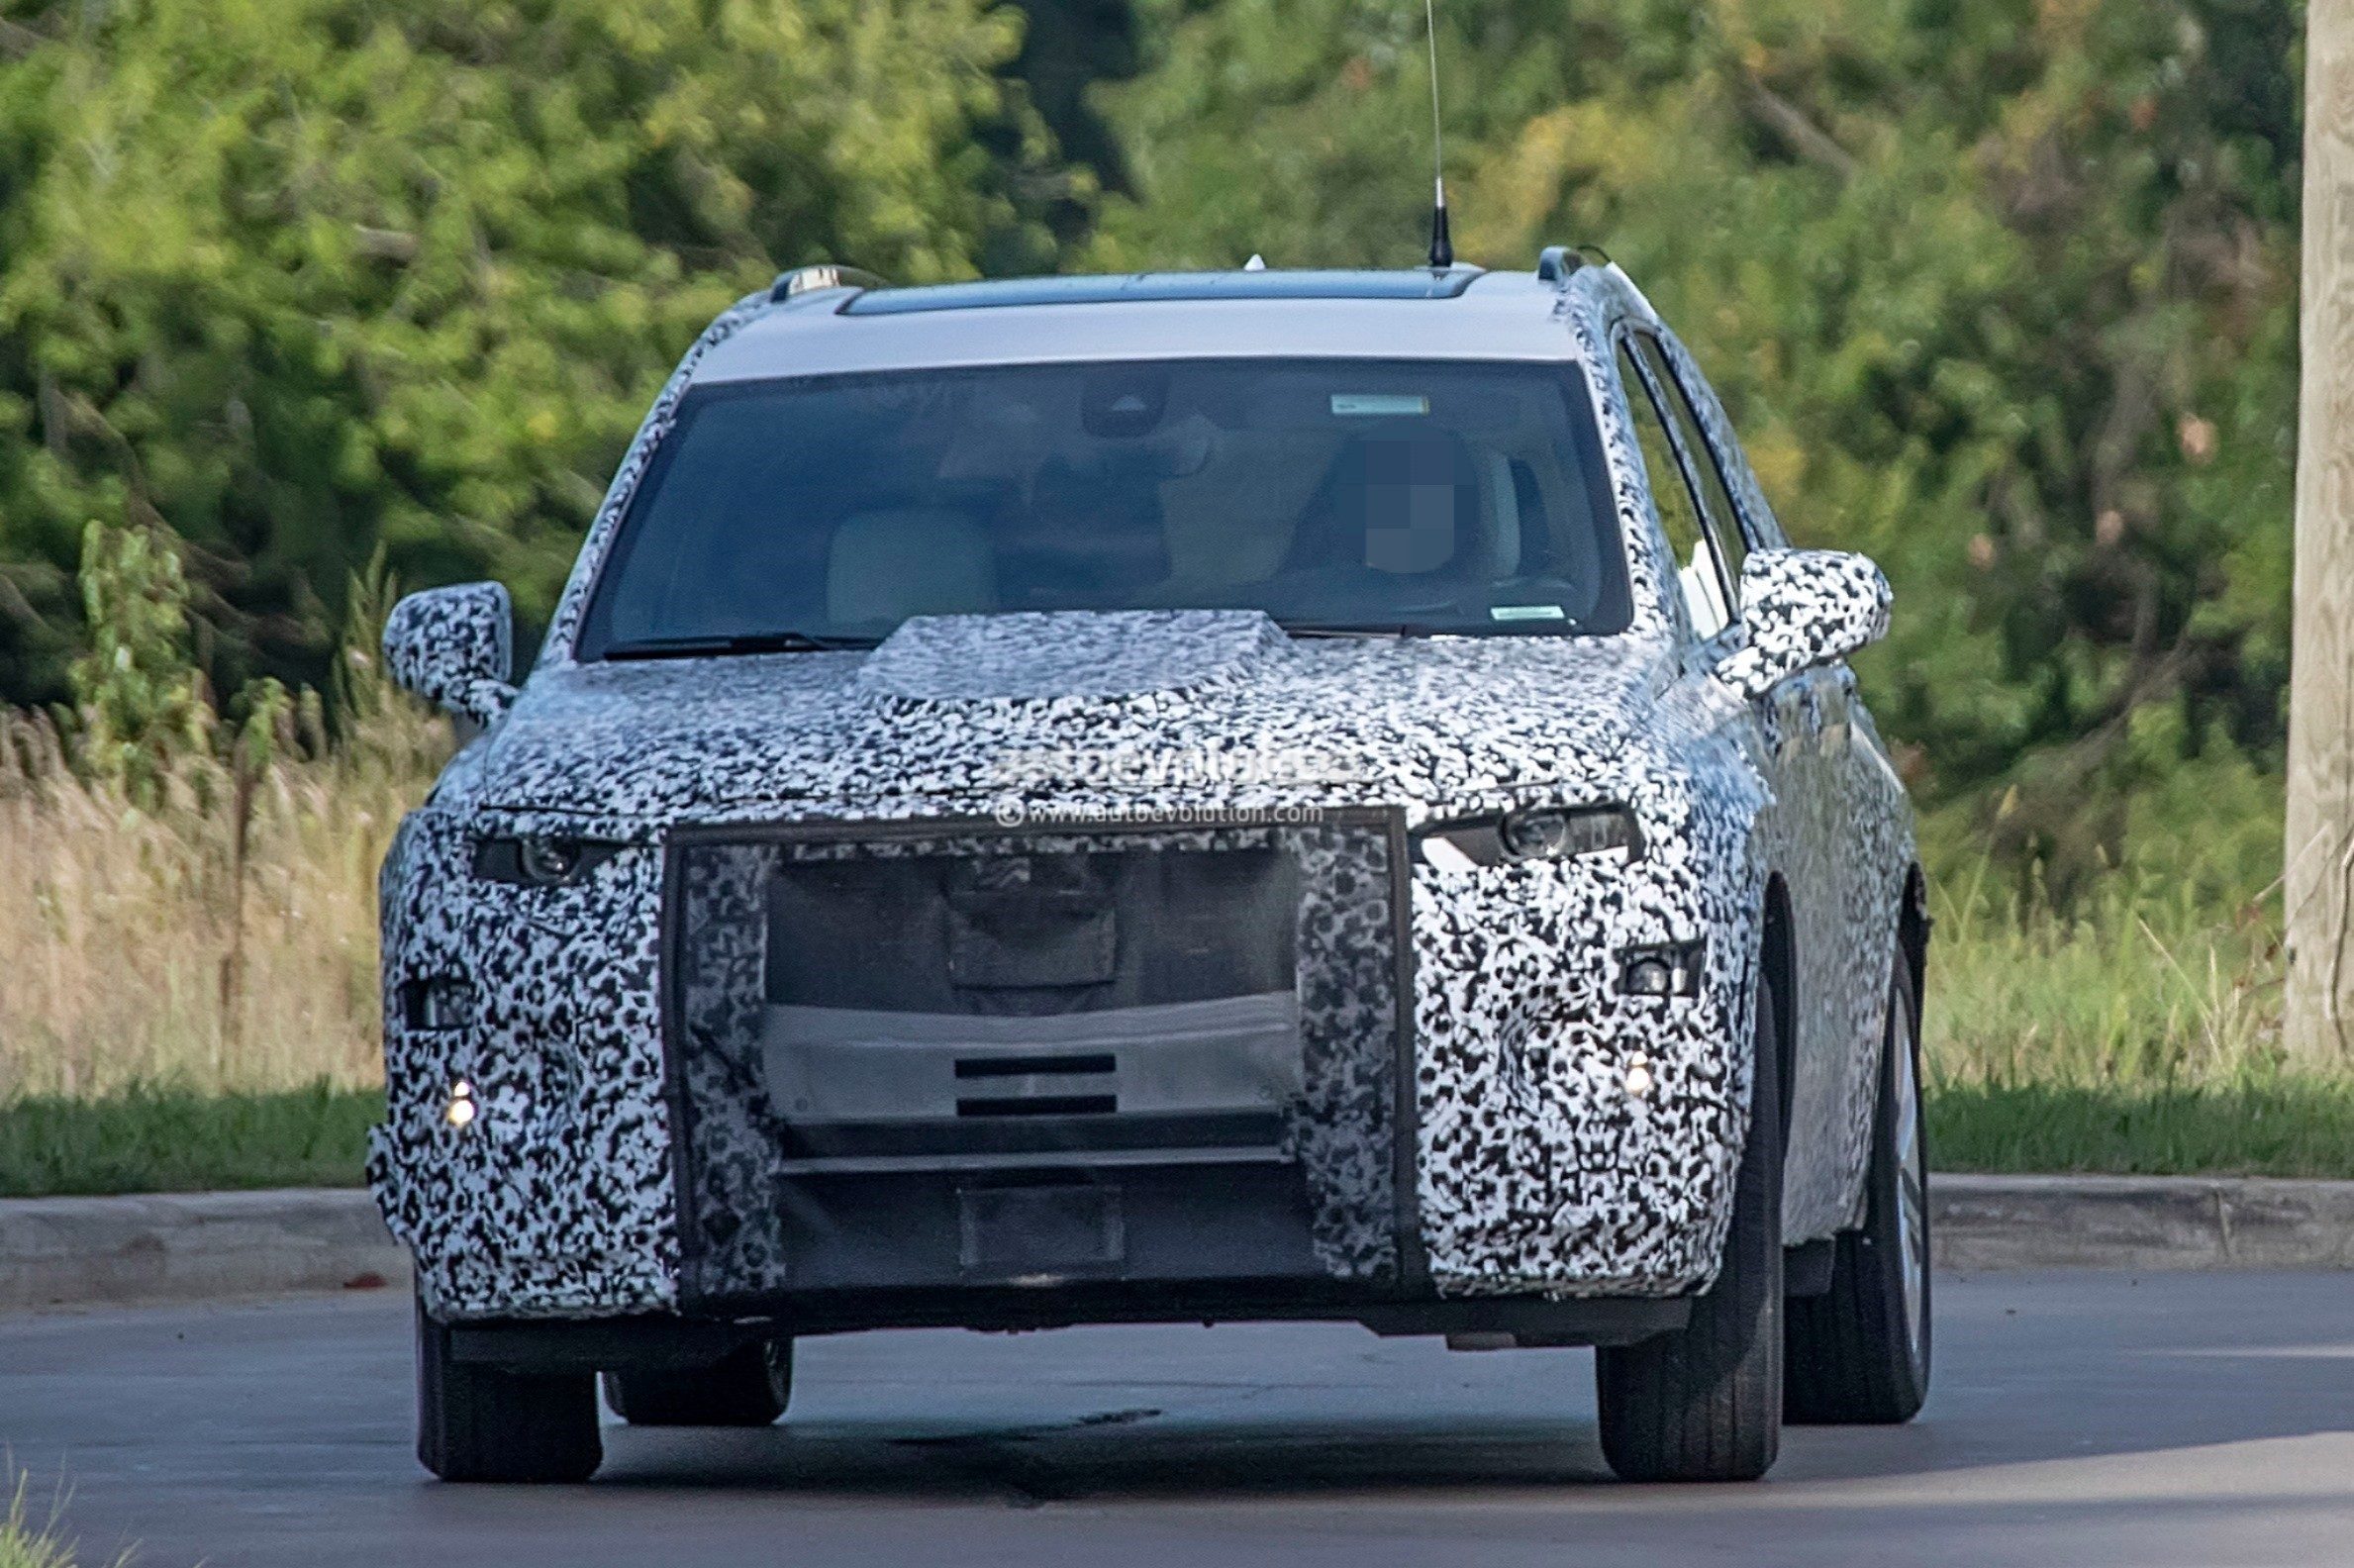 2020 Cadillac XT6 Spied With Seating For Seven People